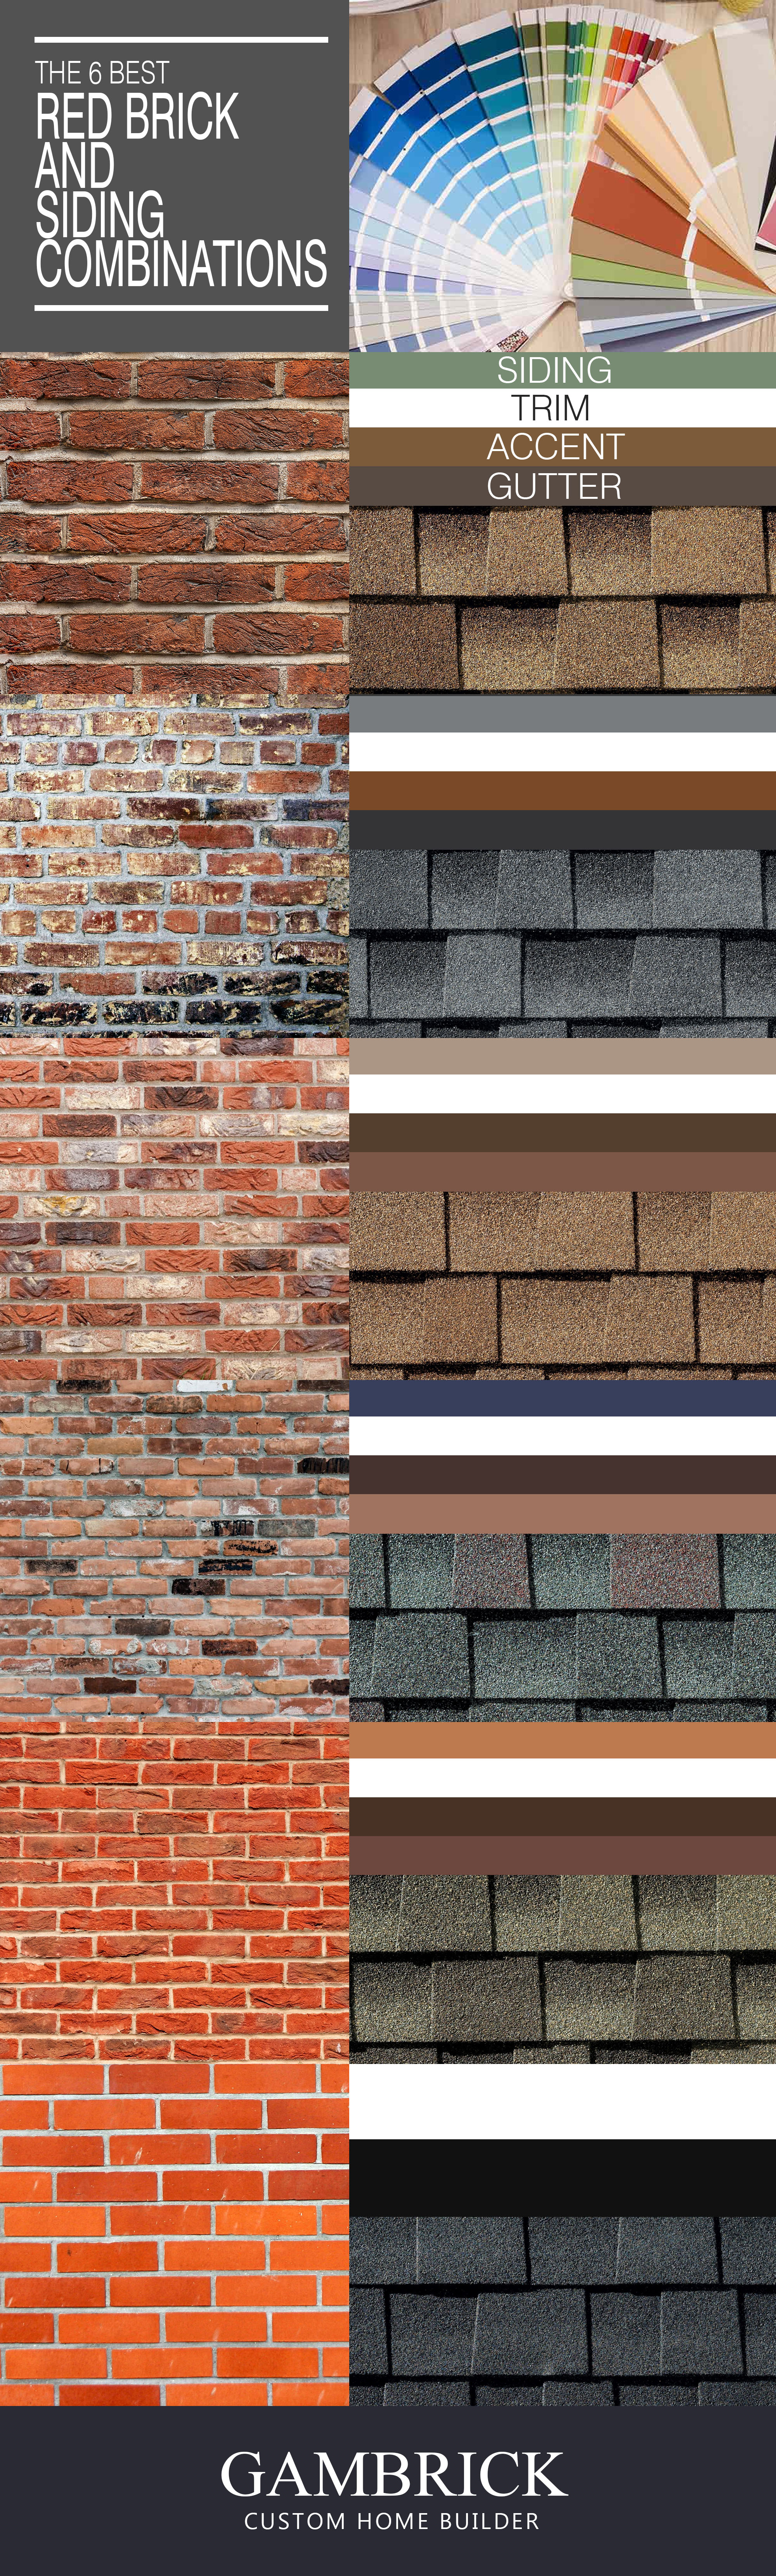 best red brick & siding color combinations infographic